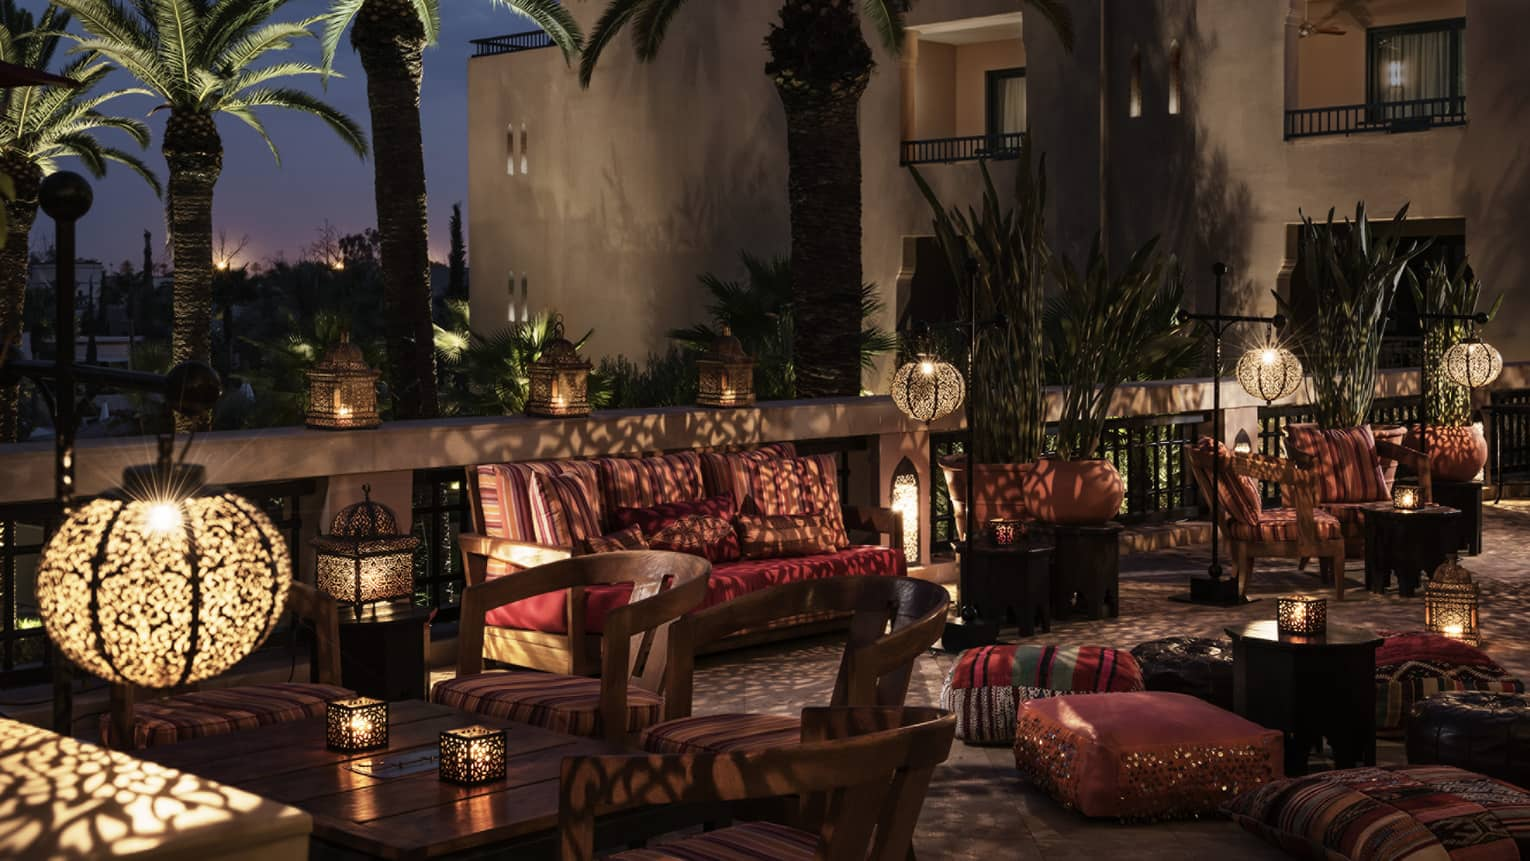 Inara Lounge dimly-lit patio seating areas with lights, shadows from Moroccan lamps